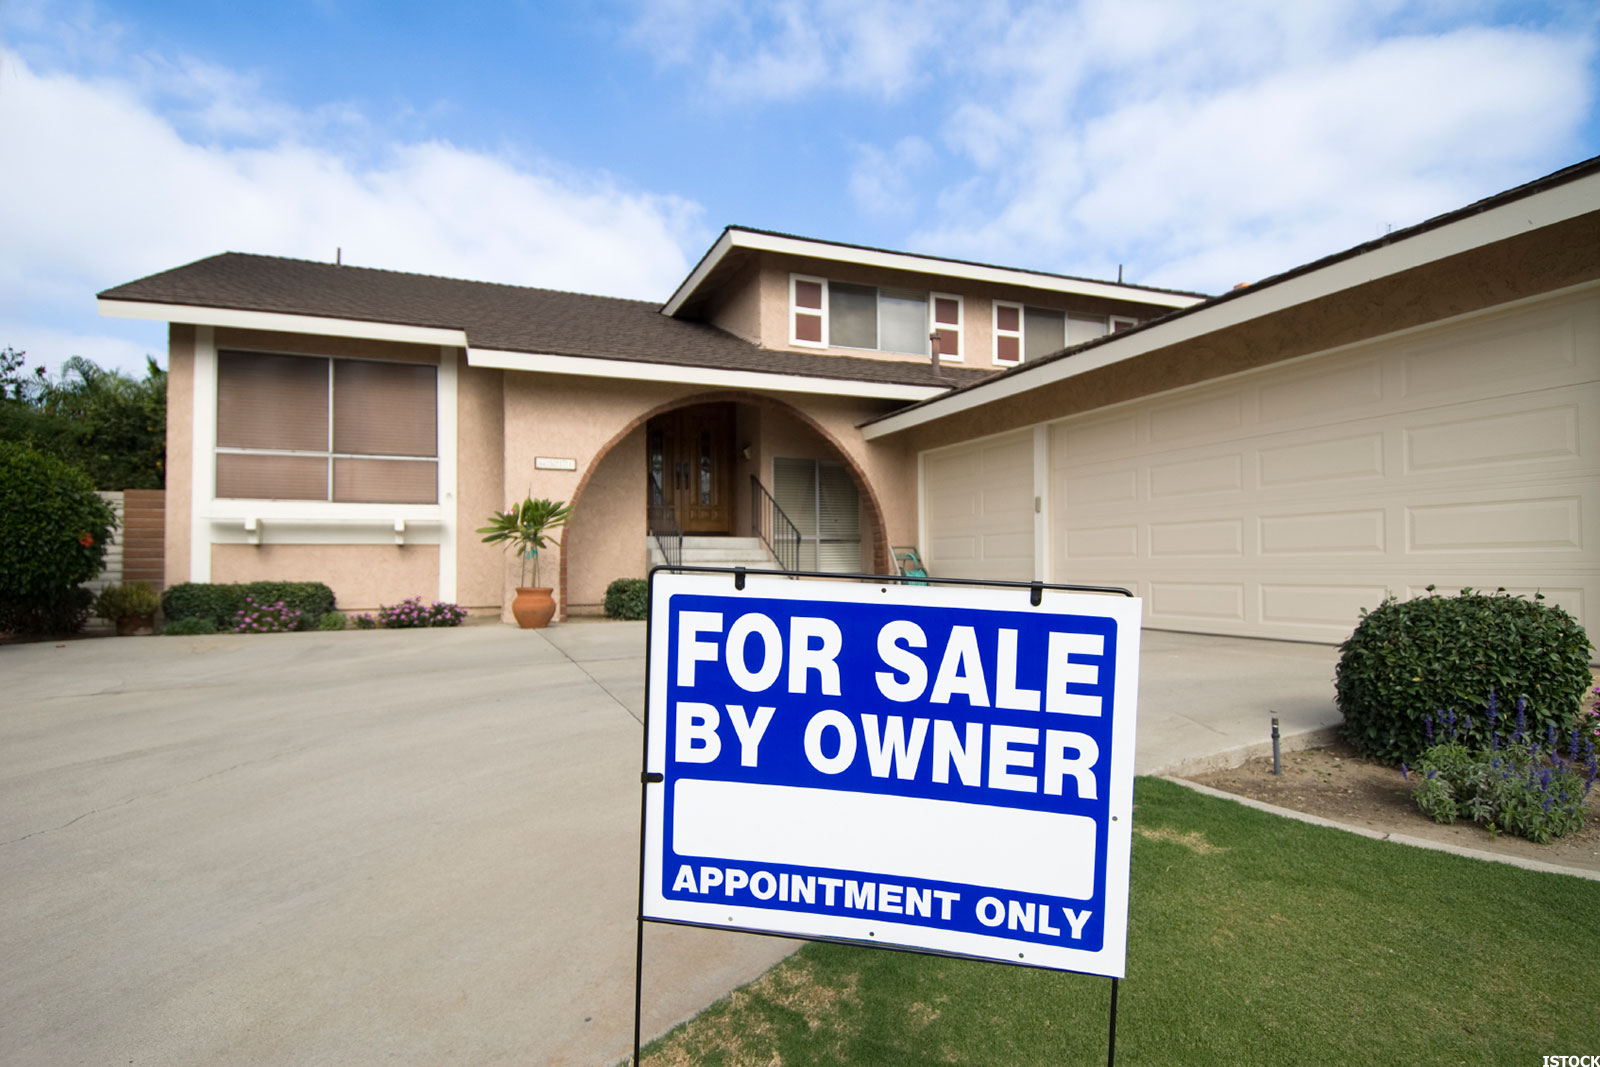 Rent To Own How To Buy A Home When You Think You Cant Afford It